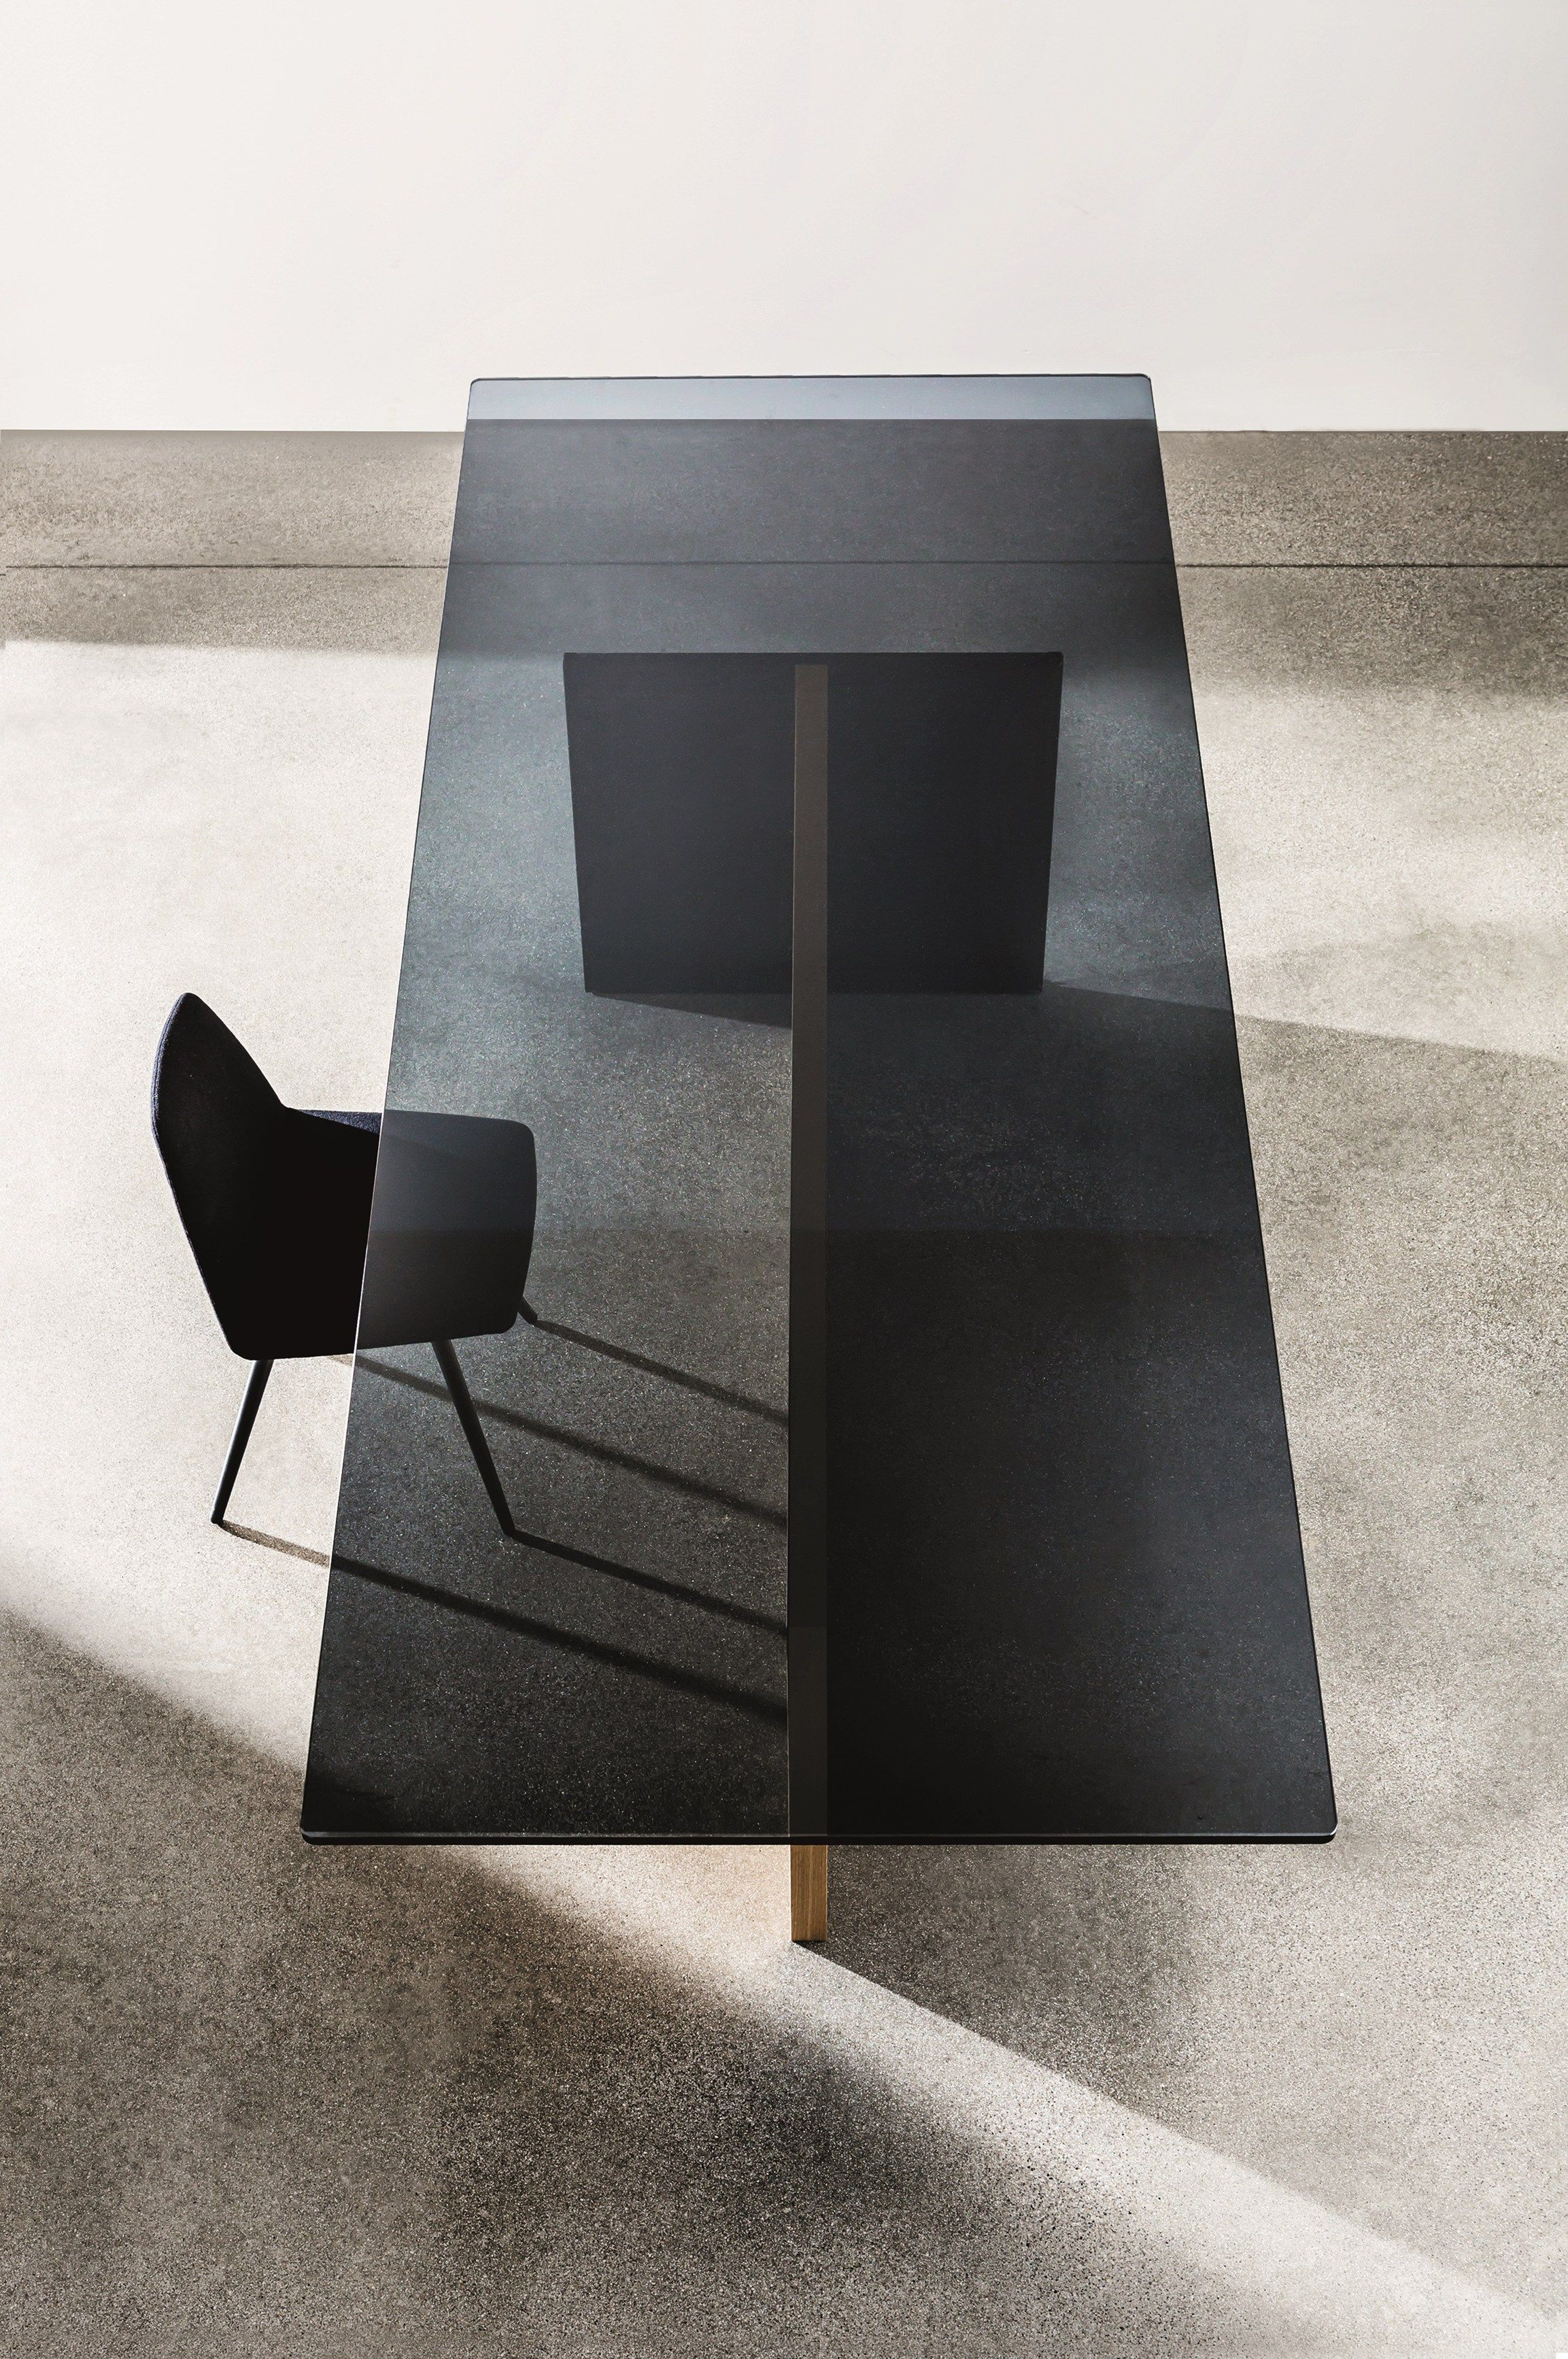 Charmant Rectangular Wood And #glass #table REGOLO By @sovetitalia